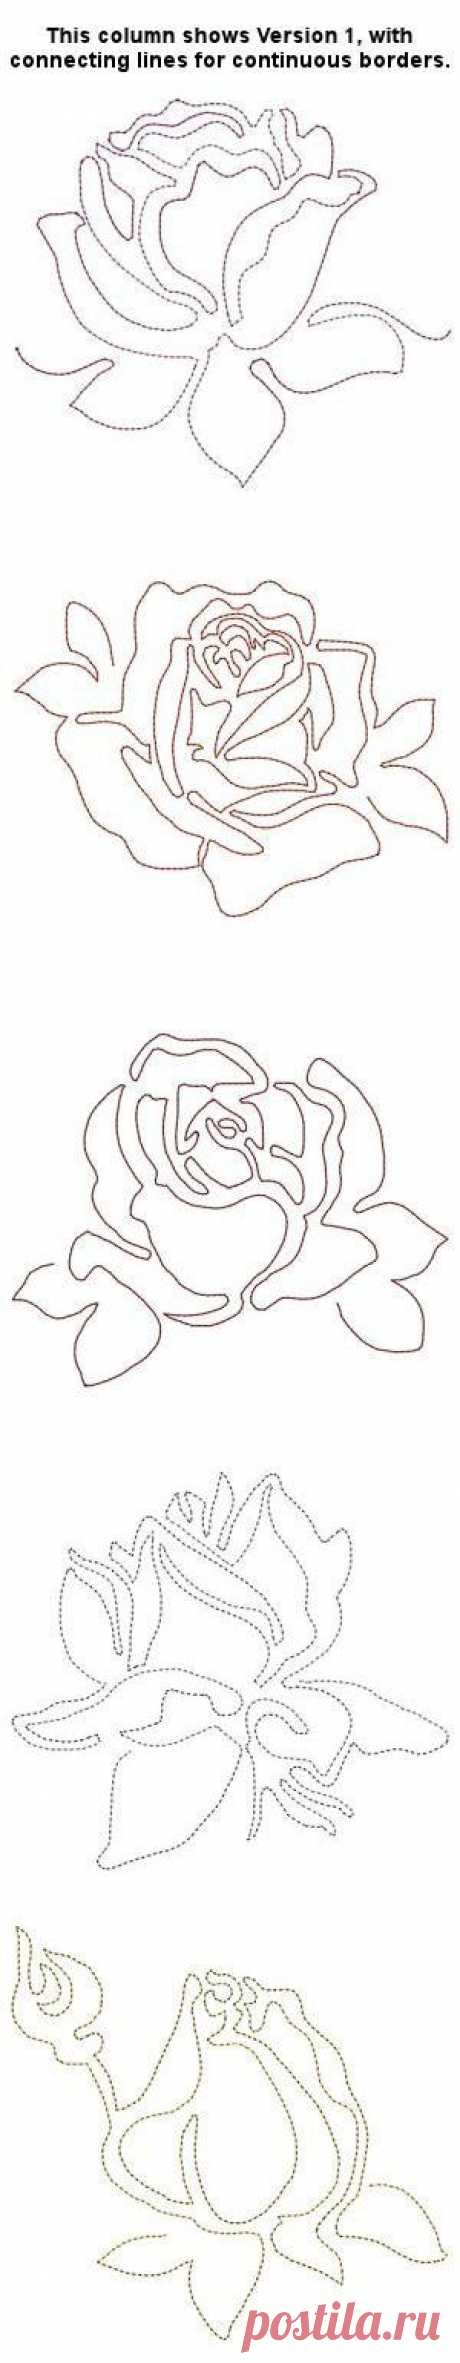 Line Work Roses, Versions 1 and 2 - Especially For You | OregonPatchWorks